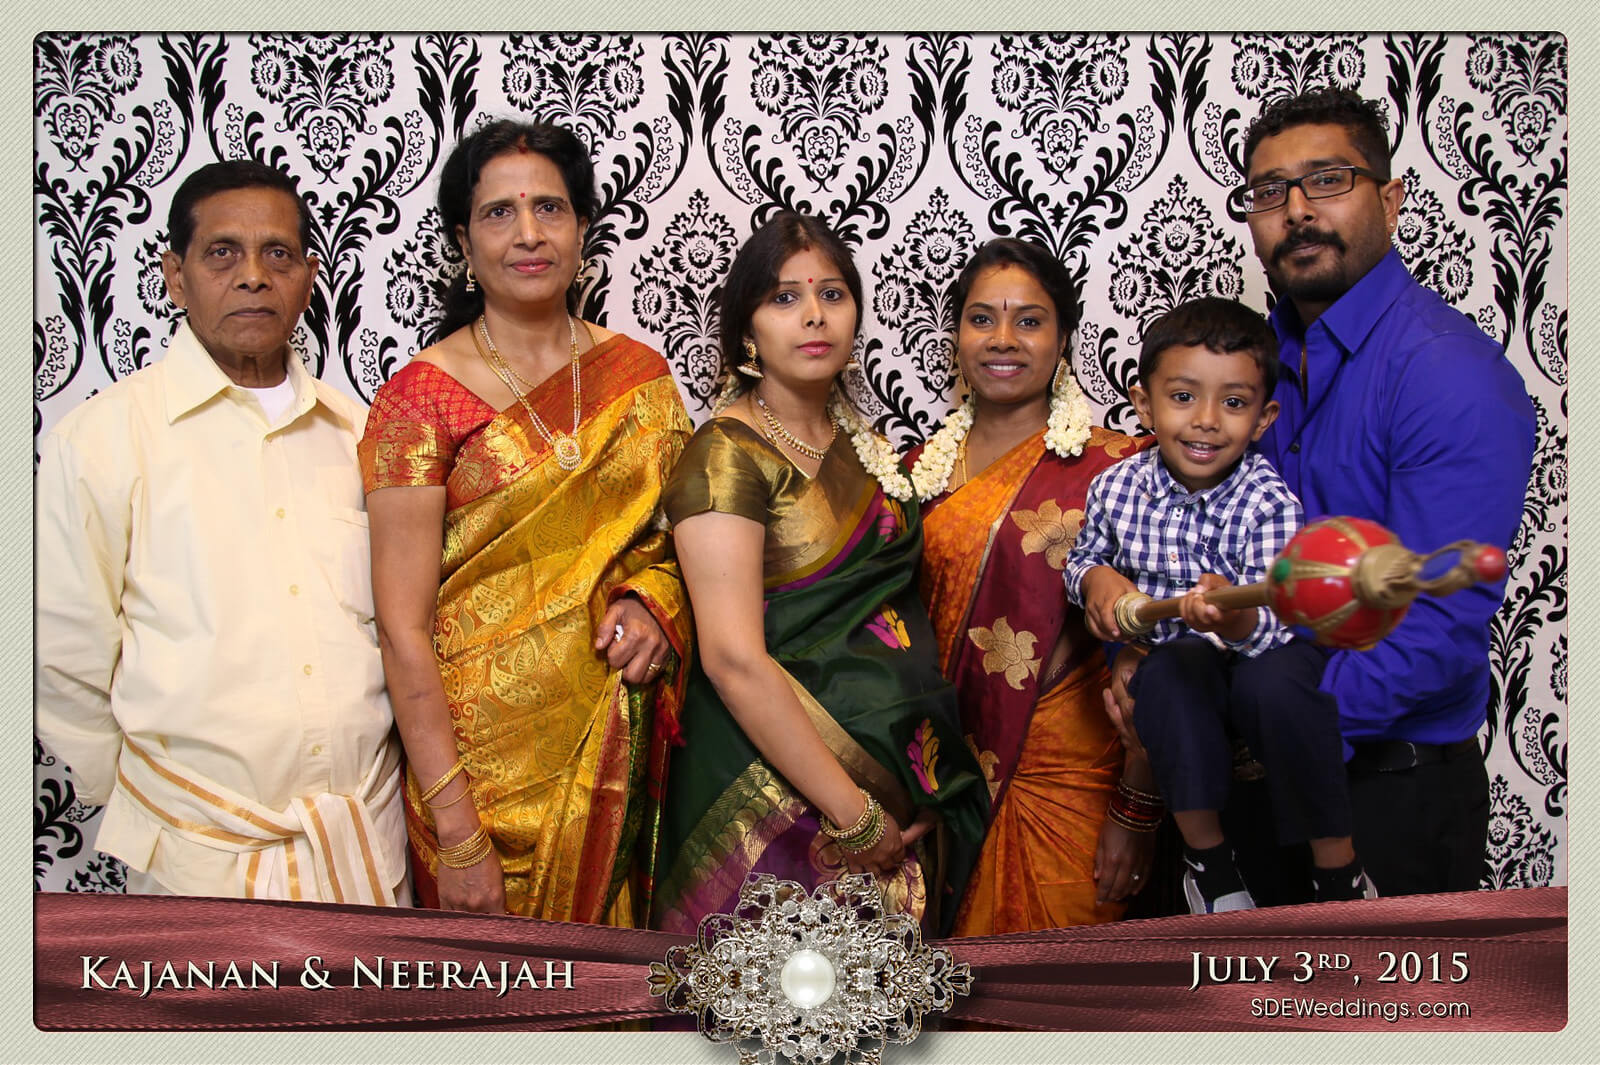 Toronto Scarborough Convention Centre Hindu Wedding Photo Booth Rental 12